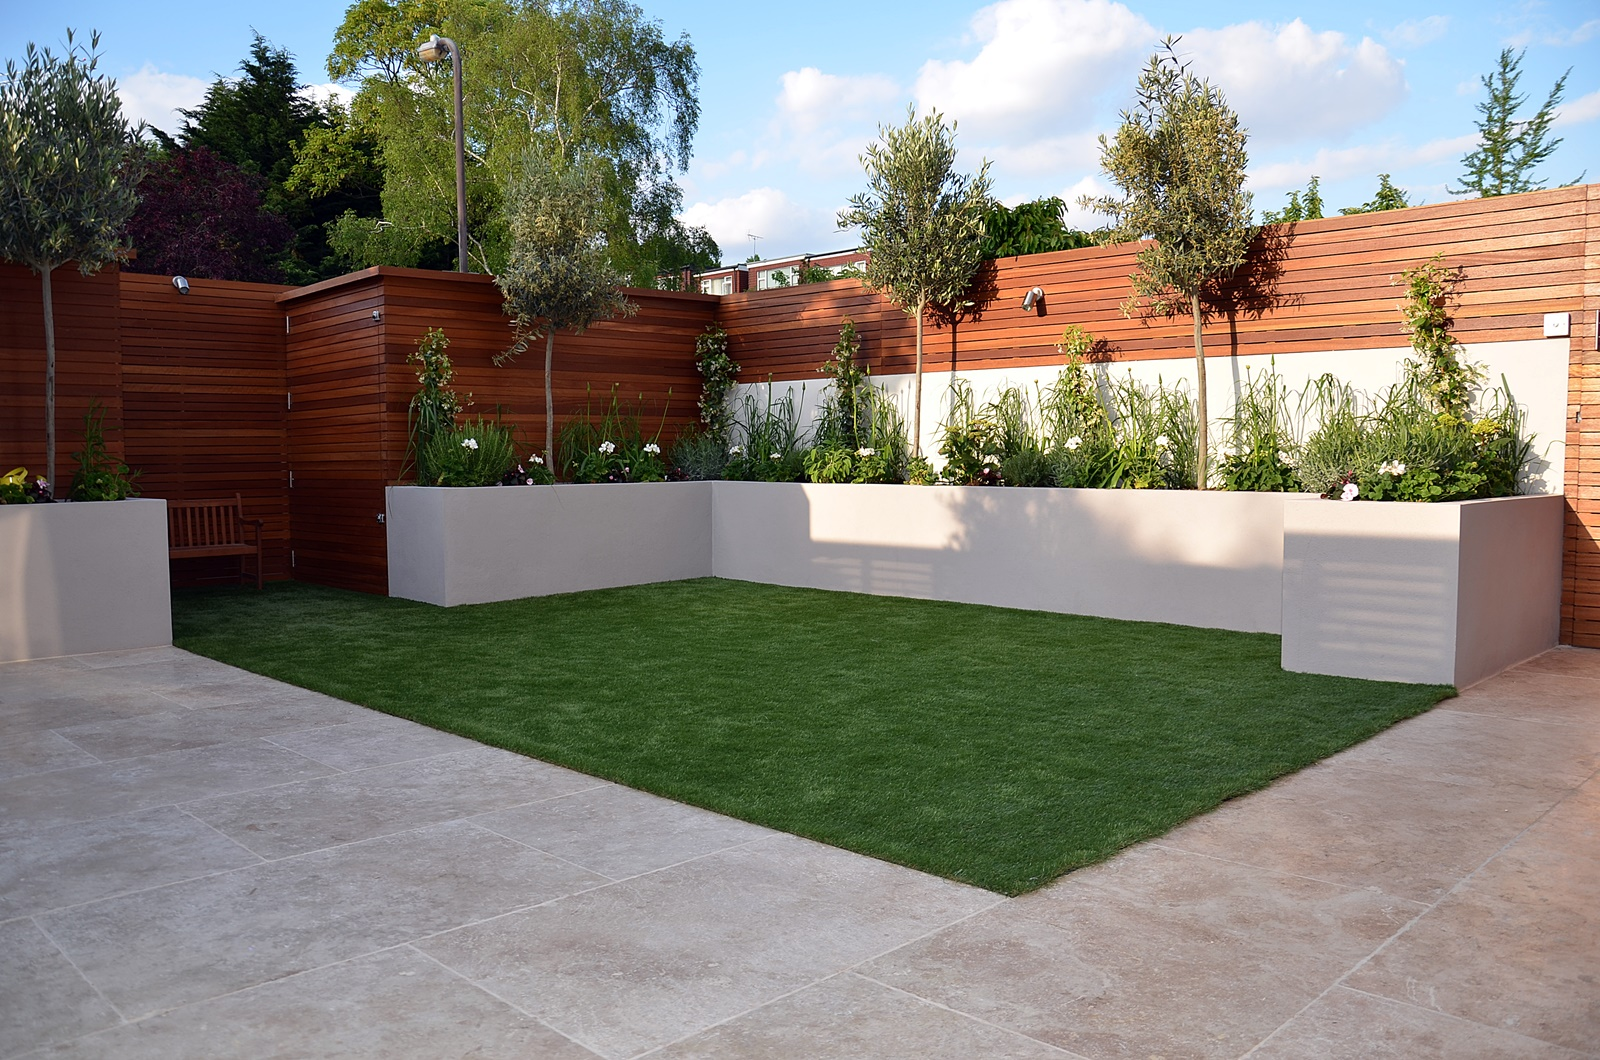 Modern garden design fulham chelsea clapham battersea for Small garden design pictures